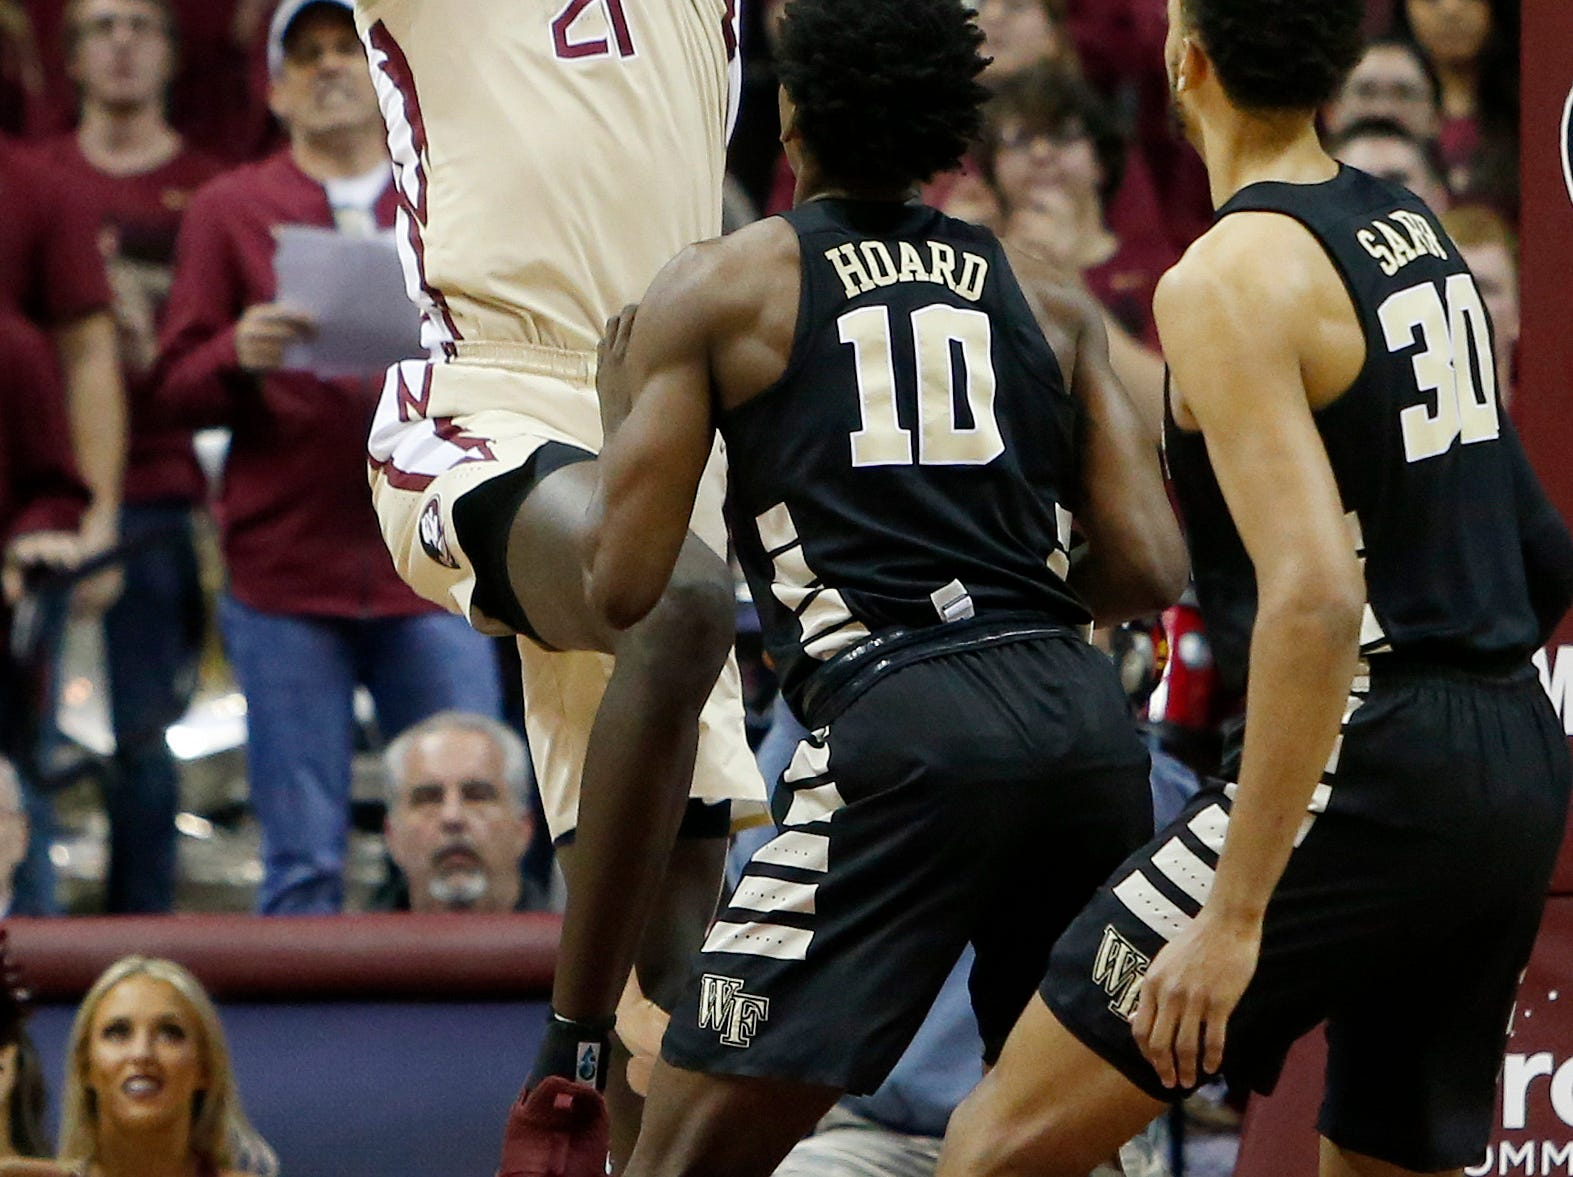 Feb 13, 2019; Tallahassee, FL, USA; Florida State Seminoles center Christ Koumadje (21) shoots the ball against the Wake Forest Demon Deacons during the first half at Donald L. Tucker Center. Mandatory Credit: Glenn Beil-USA TODAY Sports